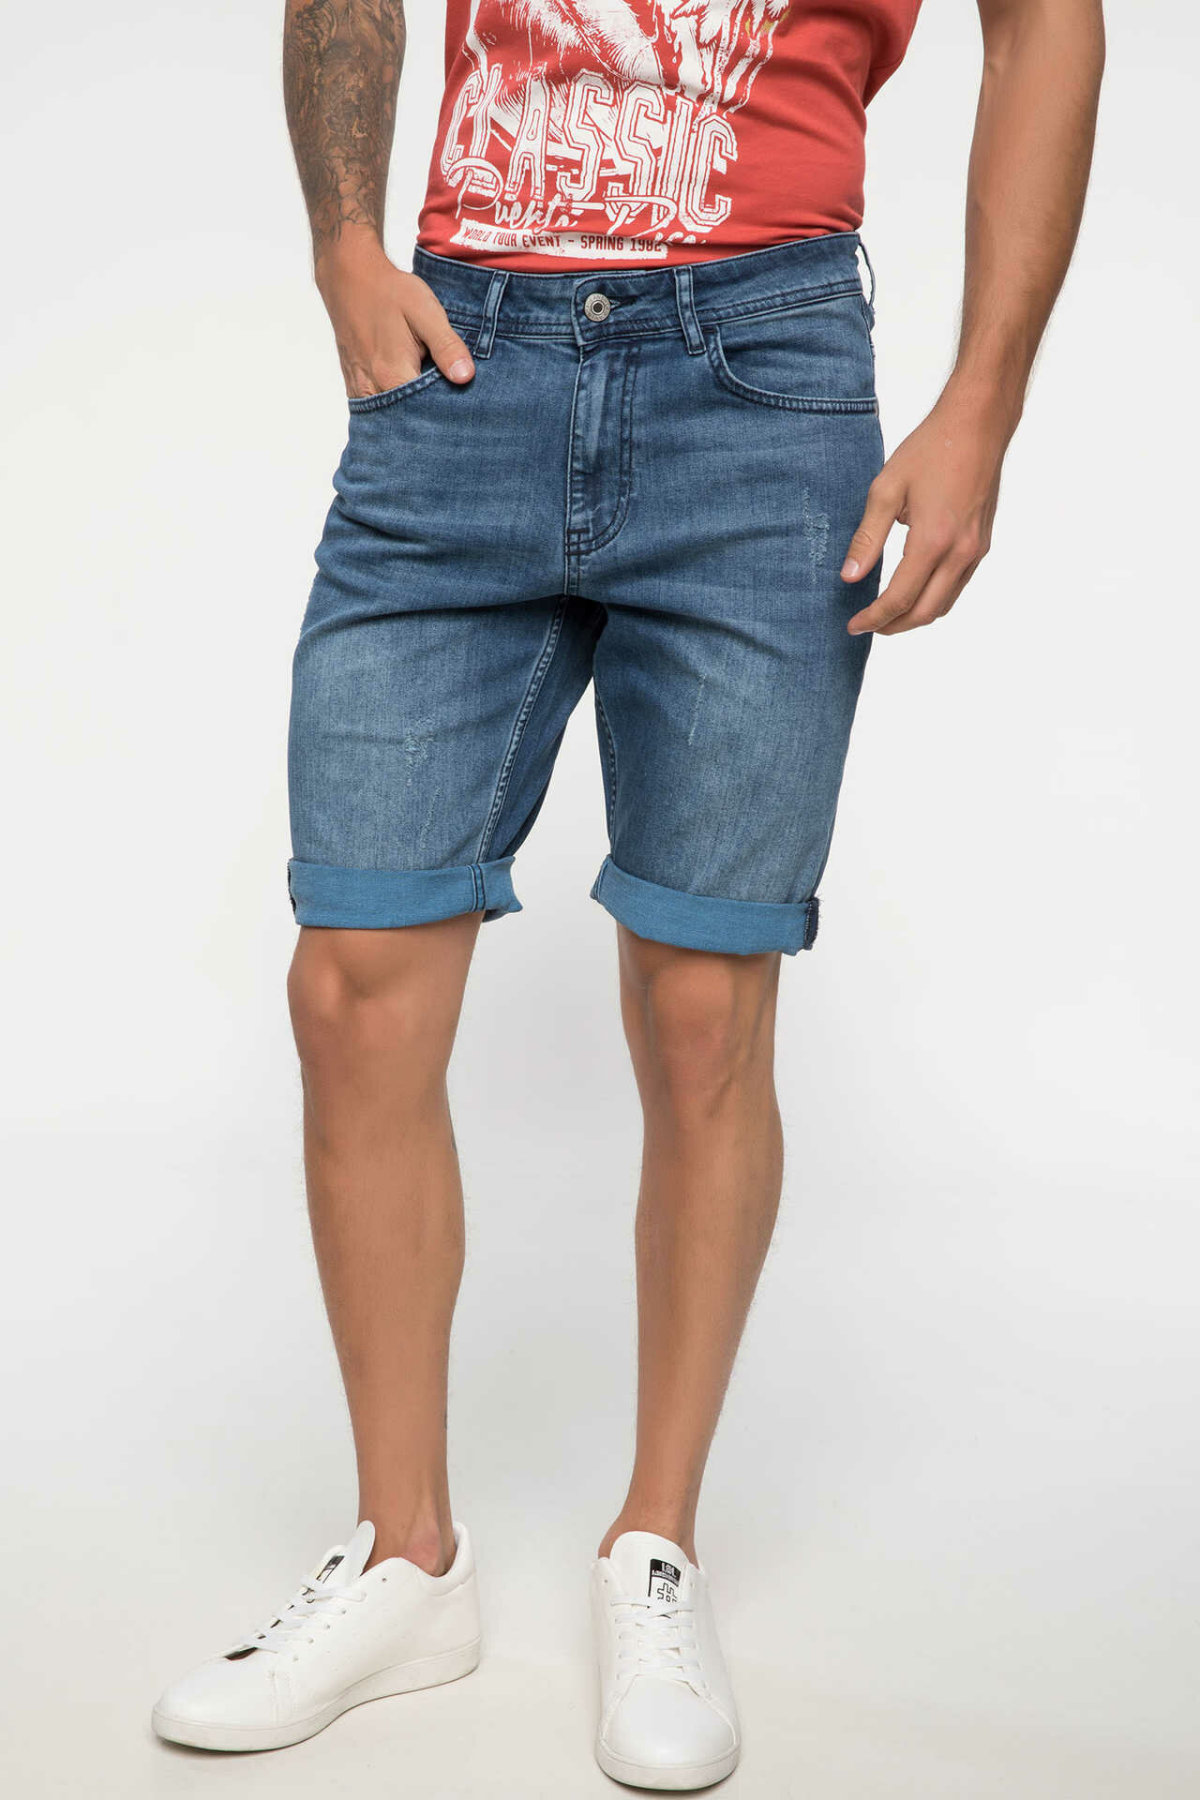 DeFacto Man Summer Casual Blue Denim Shorts Men Washed Denim Short Bottoms Male Fit Mid-waist Bermuda Shorts-I8964AZ18HS